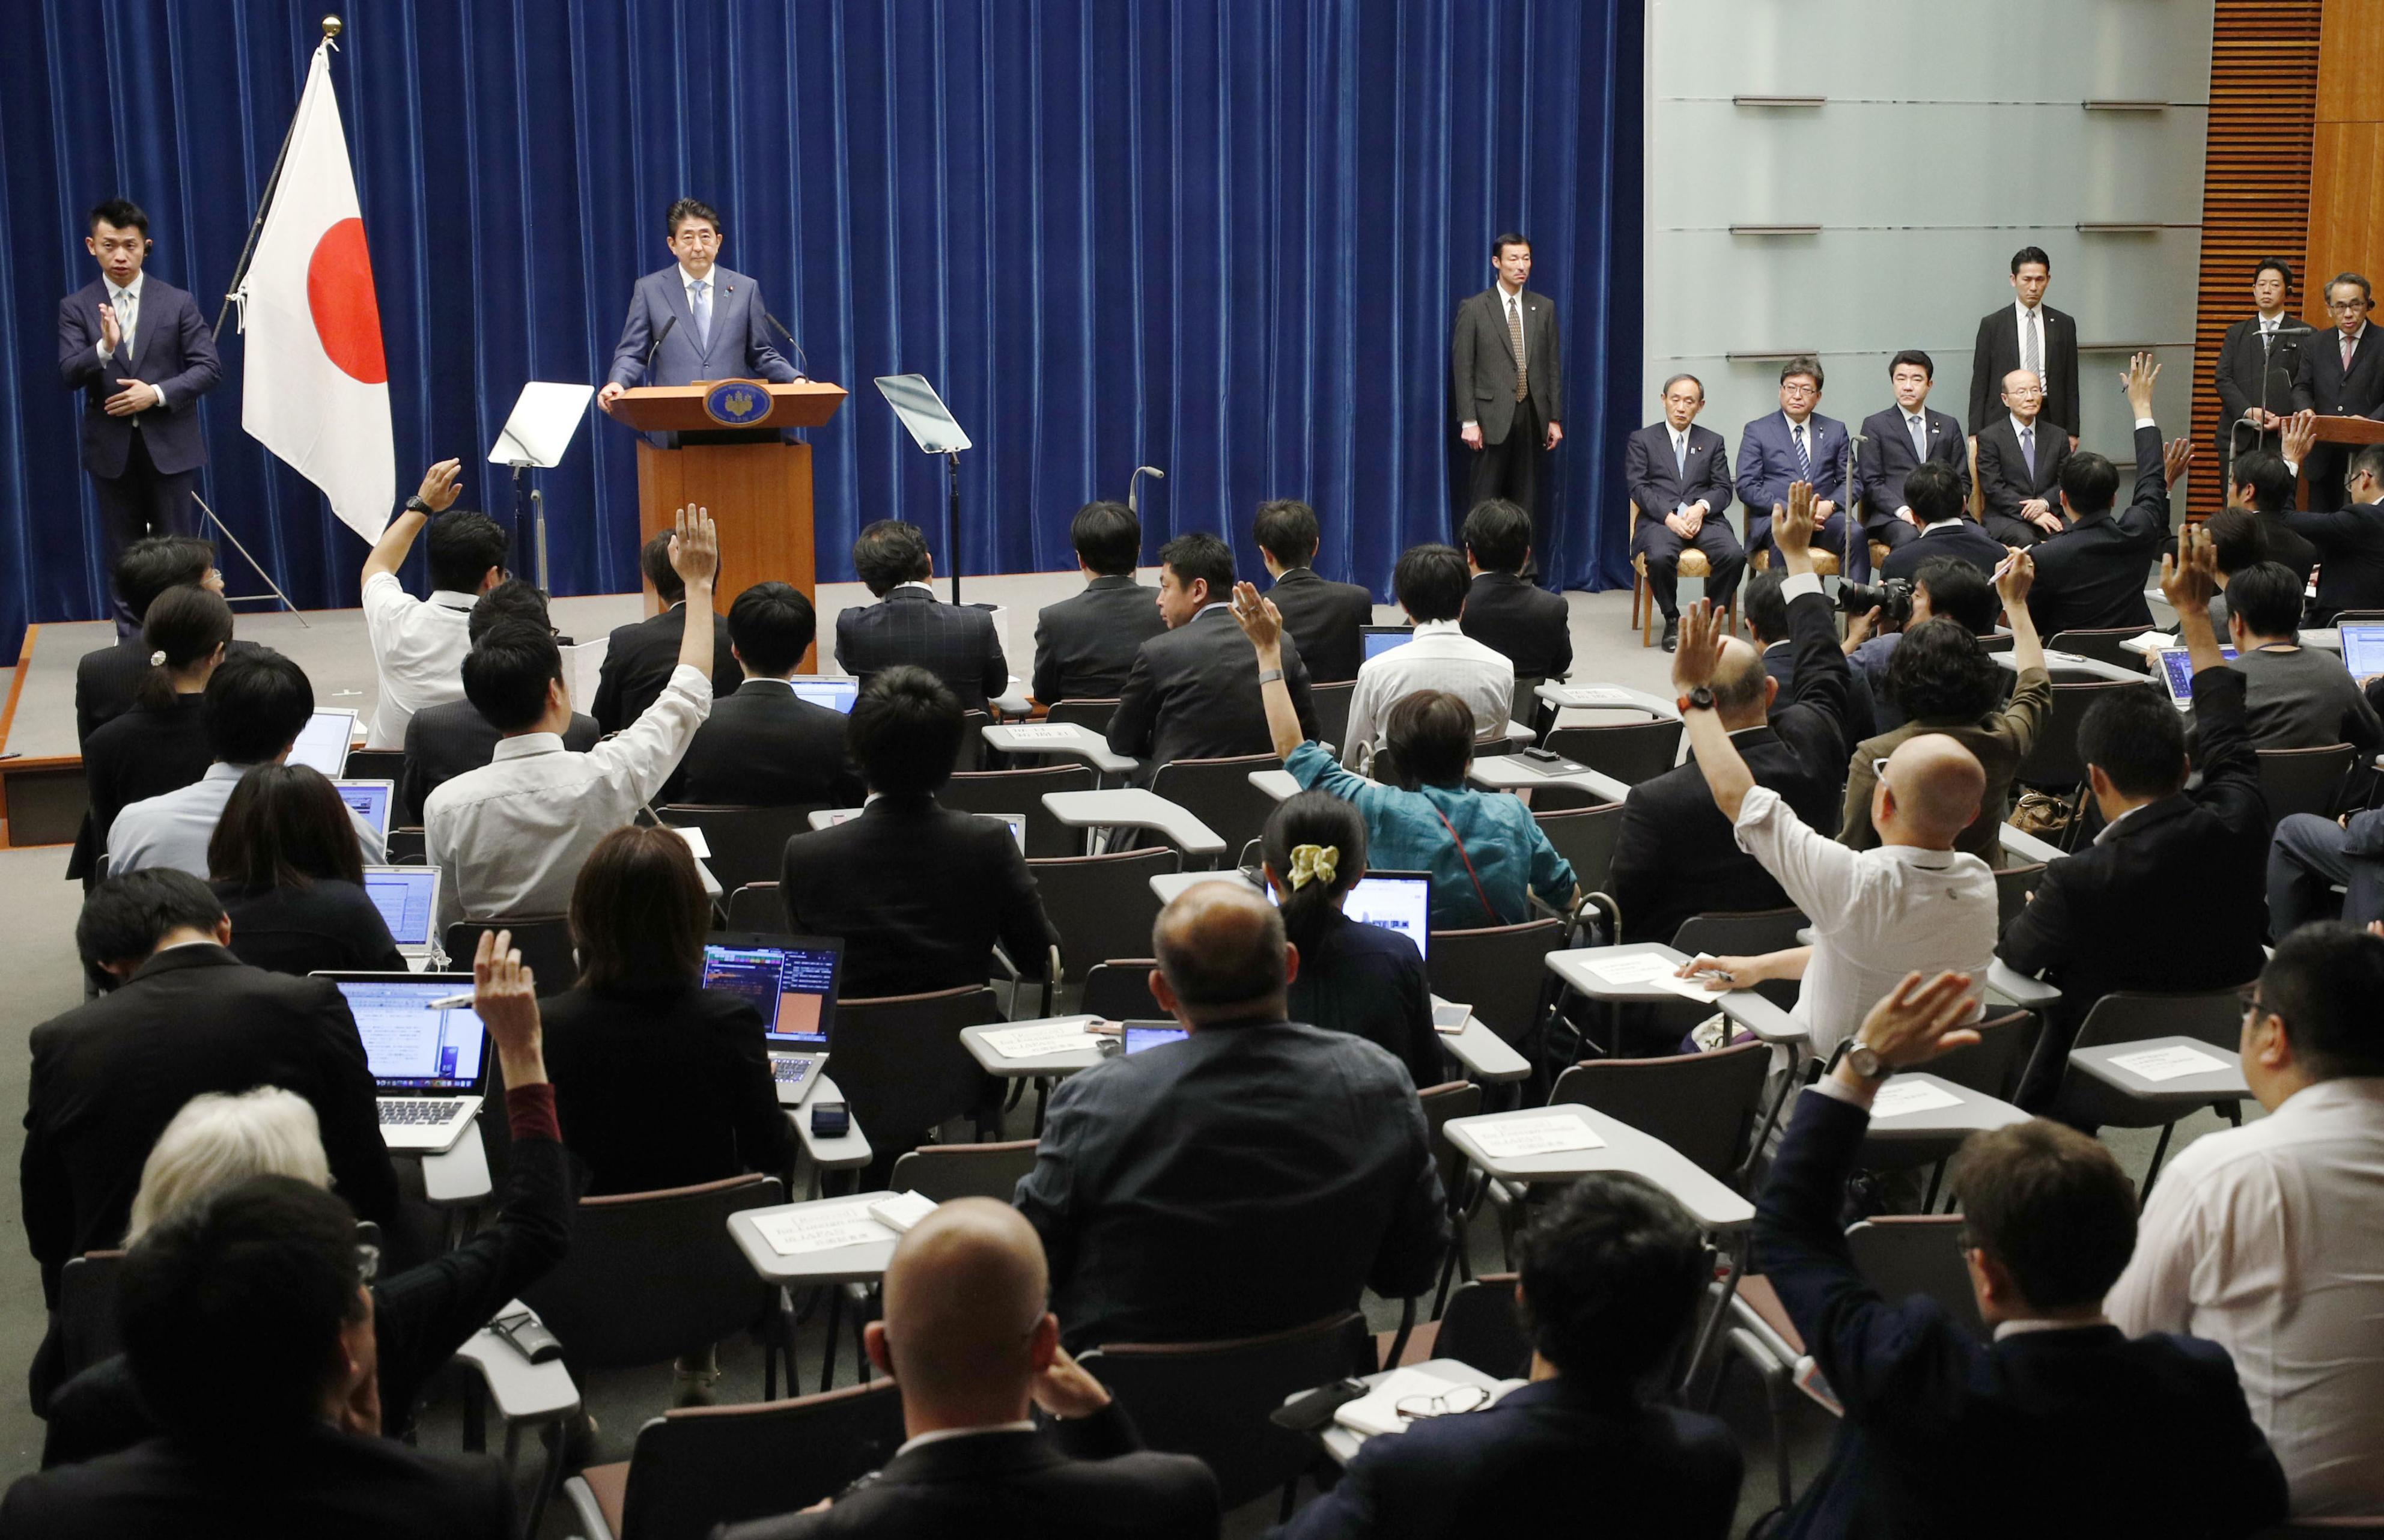 PM Abe at press conference